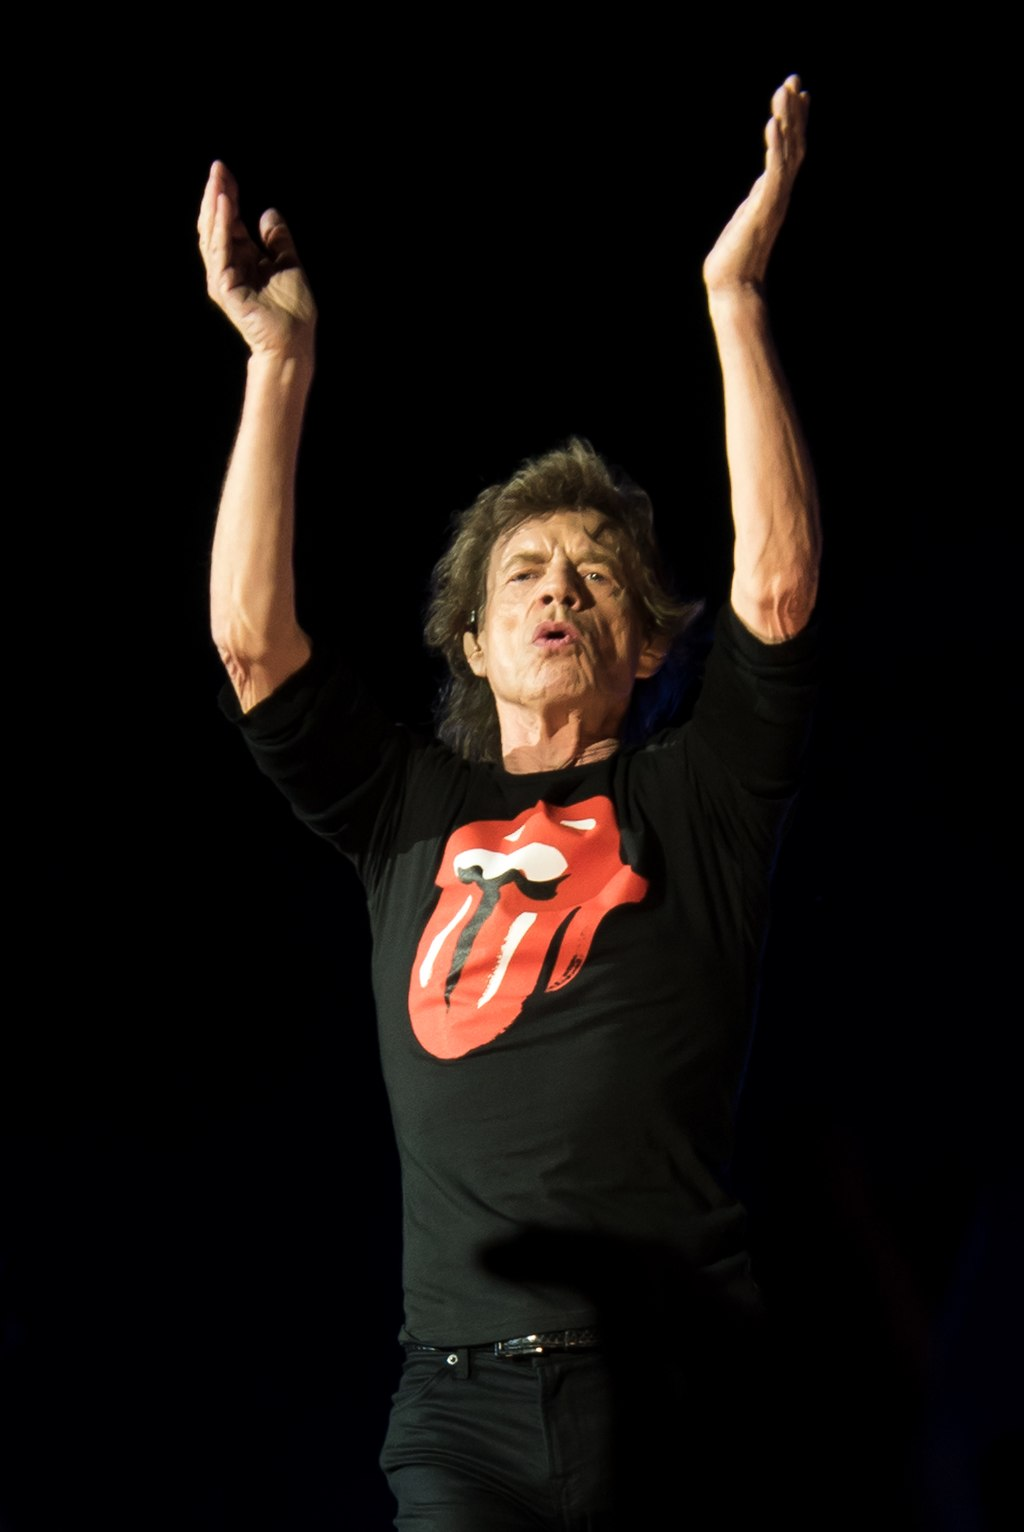 Mick Jagger The Rolling Stones Jerzy Bednarski / CC BY-SA (https://creativecommons.org/licenses/by-sa/4.0)